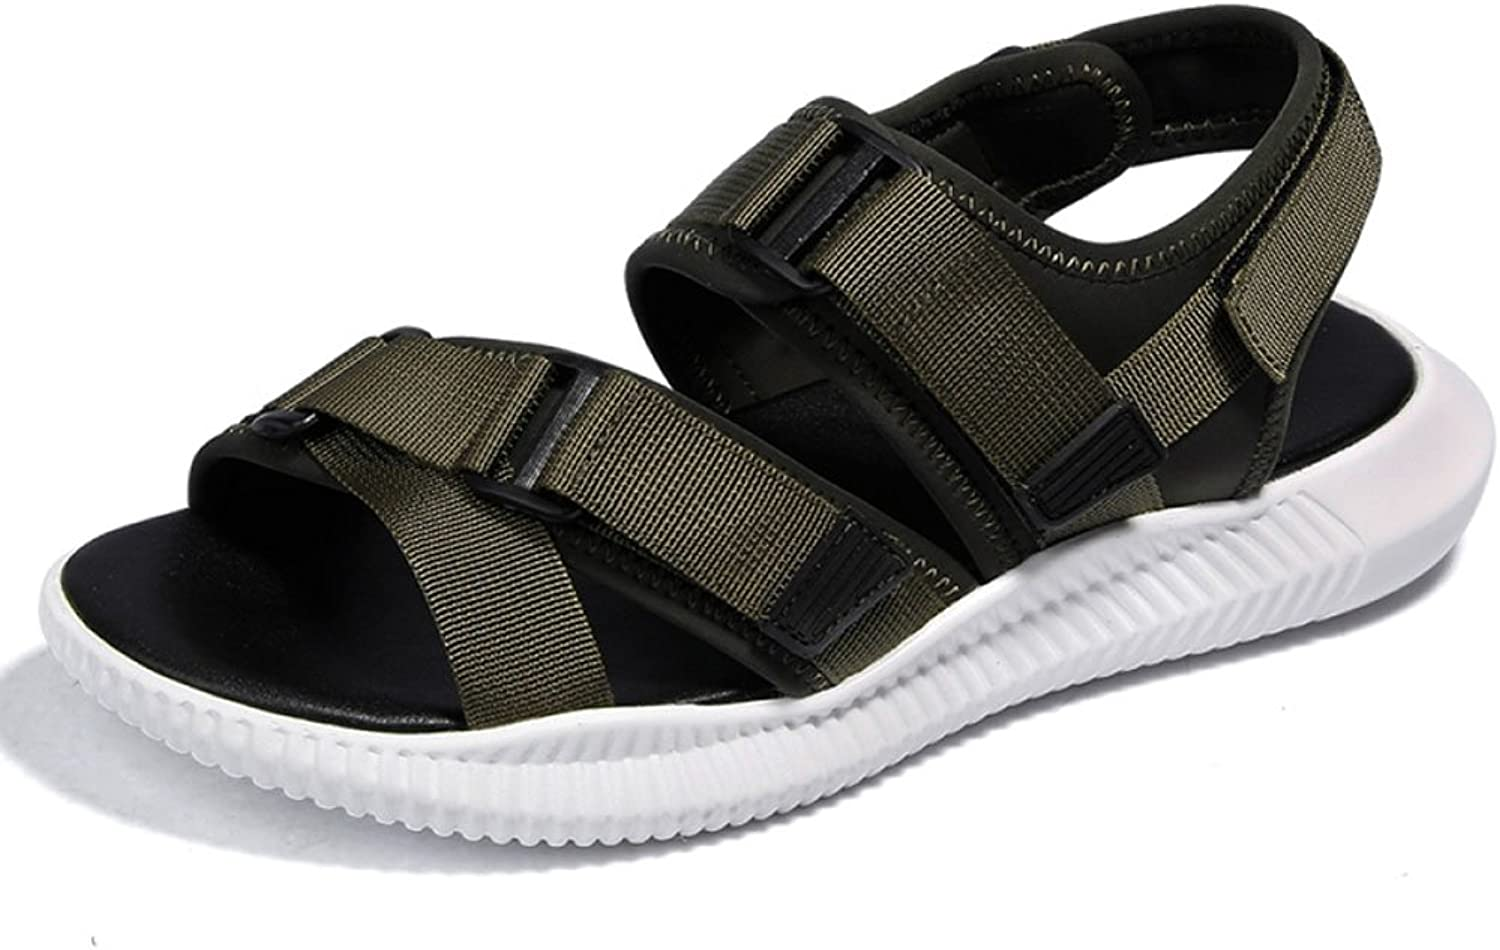 LQV Men's Sandals for Summer Casual Peep-Toe Beach shoes Korean Trend Youth Punch Velcro shoes